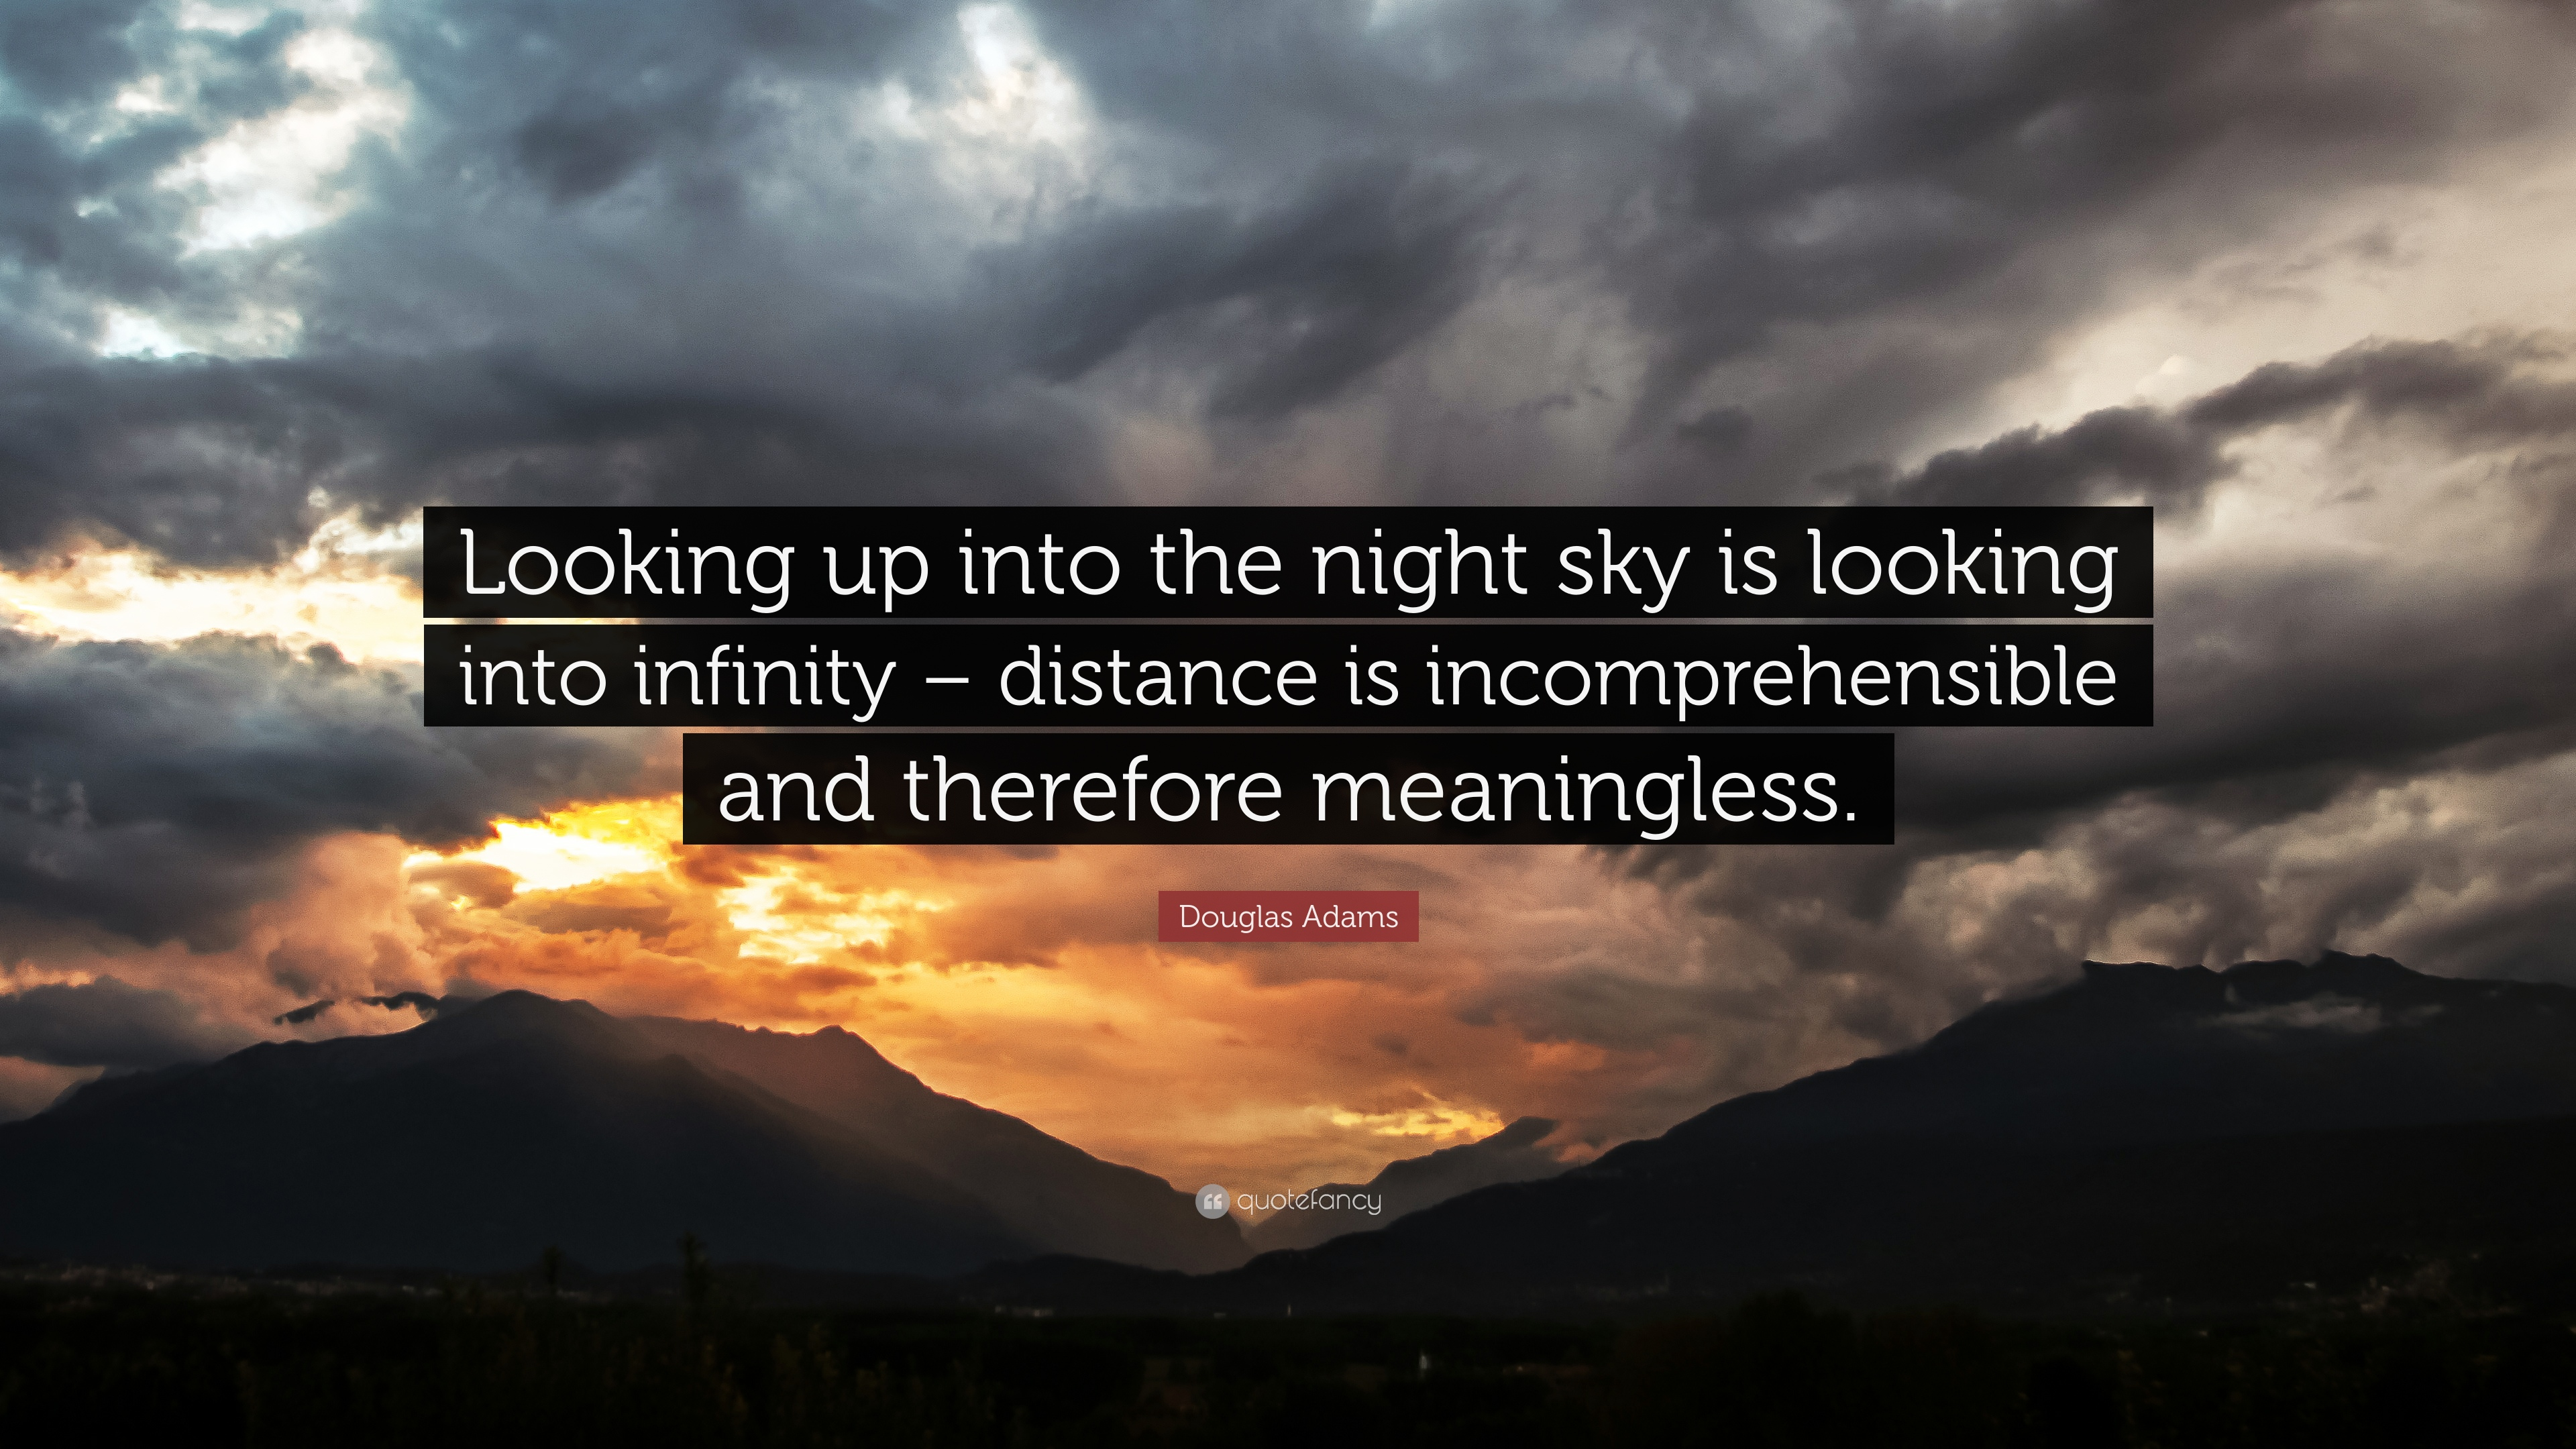 Douglas Adams Quote Looking Up Into The Night Sky Is Looking Into